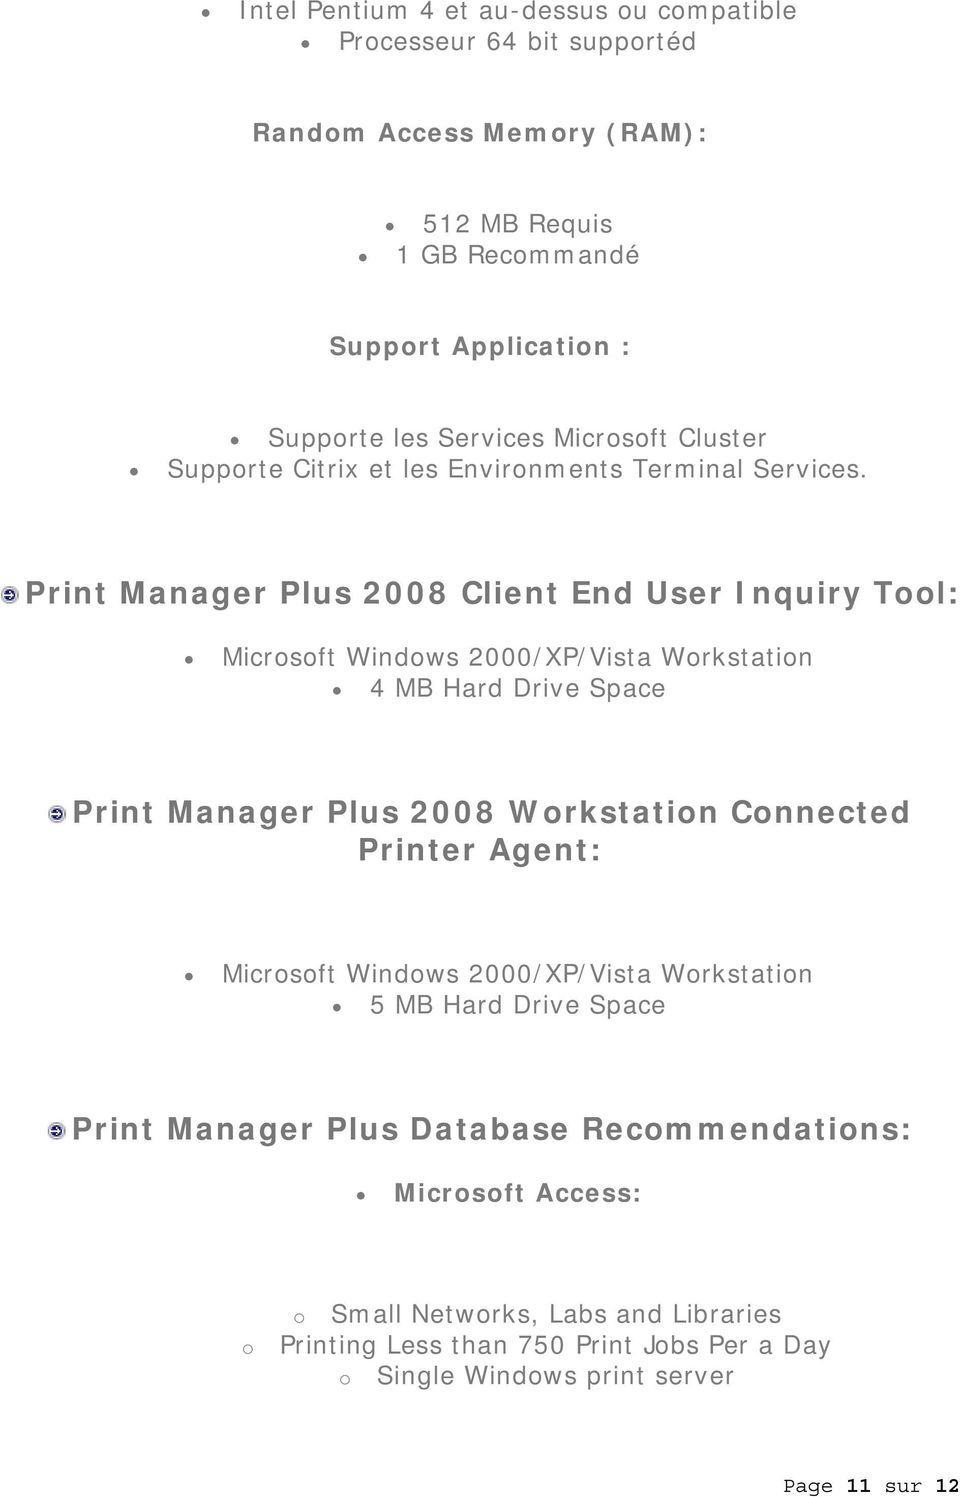 Print Manager Plus 2008 Client End User Inquiry Tool: Microsoft Windows 2000/XP/Vista Workstation 4 MB Hard Drive Space Print Manager Plus 2008 Workstation Connected